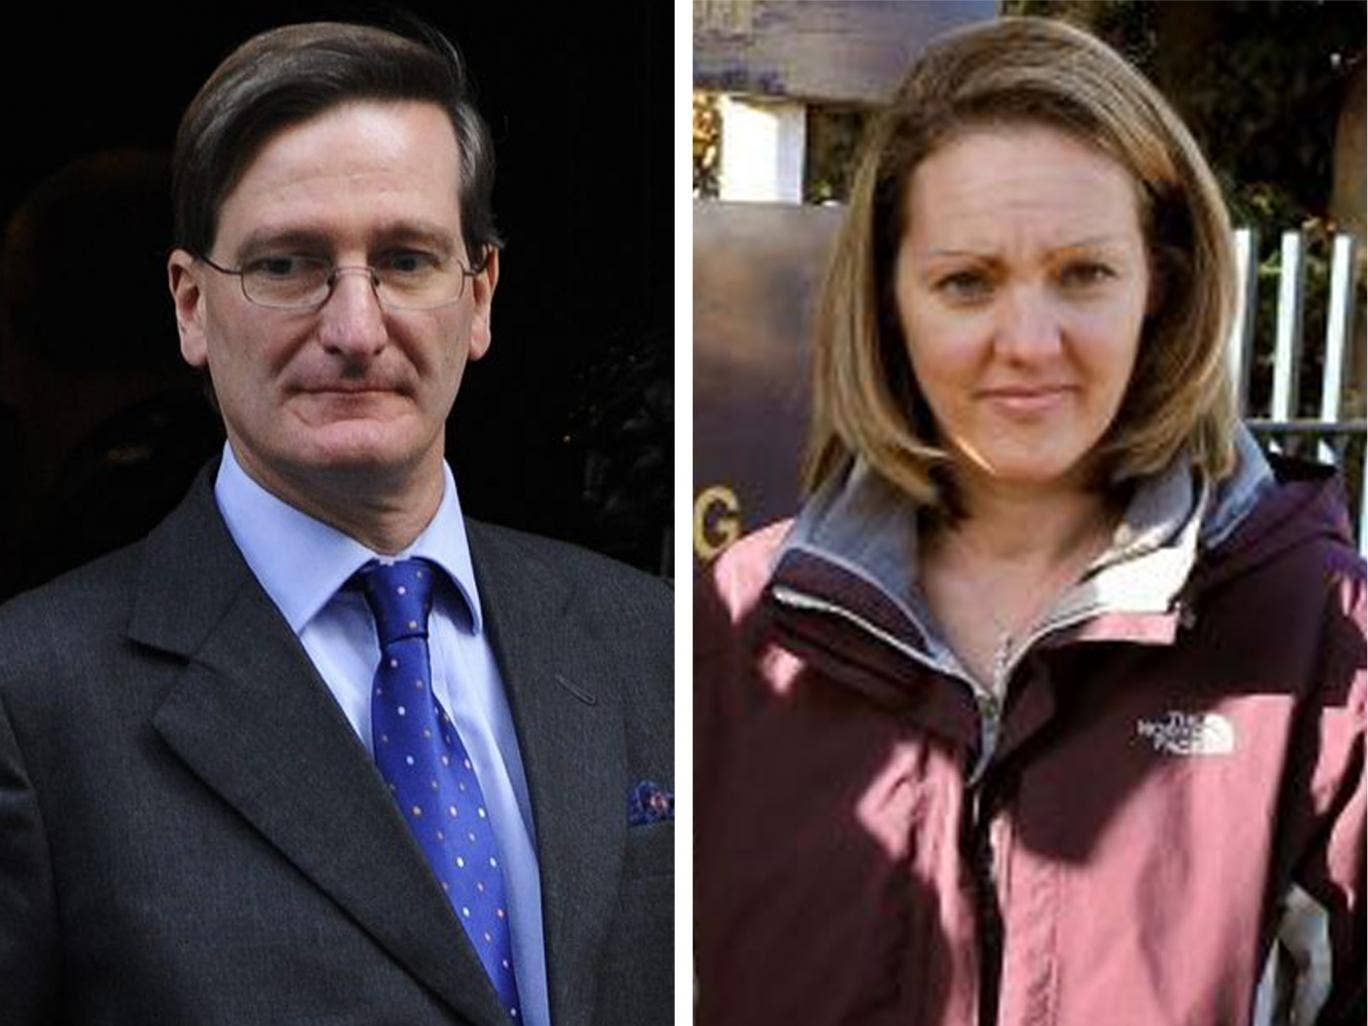 Attroney General Dominic Grieve, left, and Danny Nightingale's wife Sally, who has been campaigning for a review of her husband's sentence